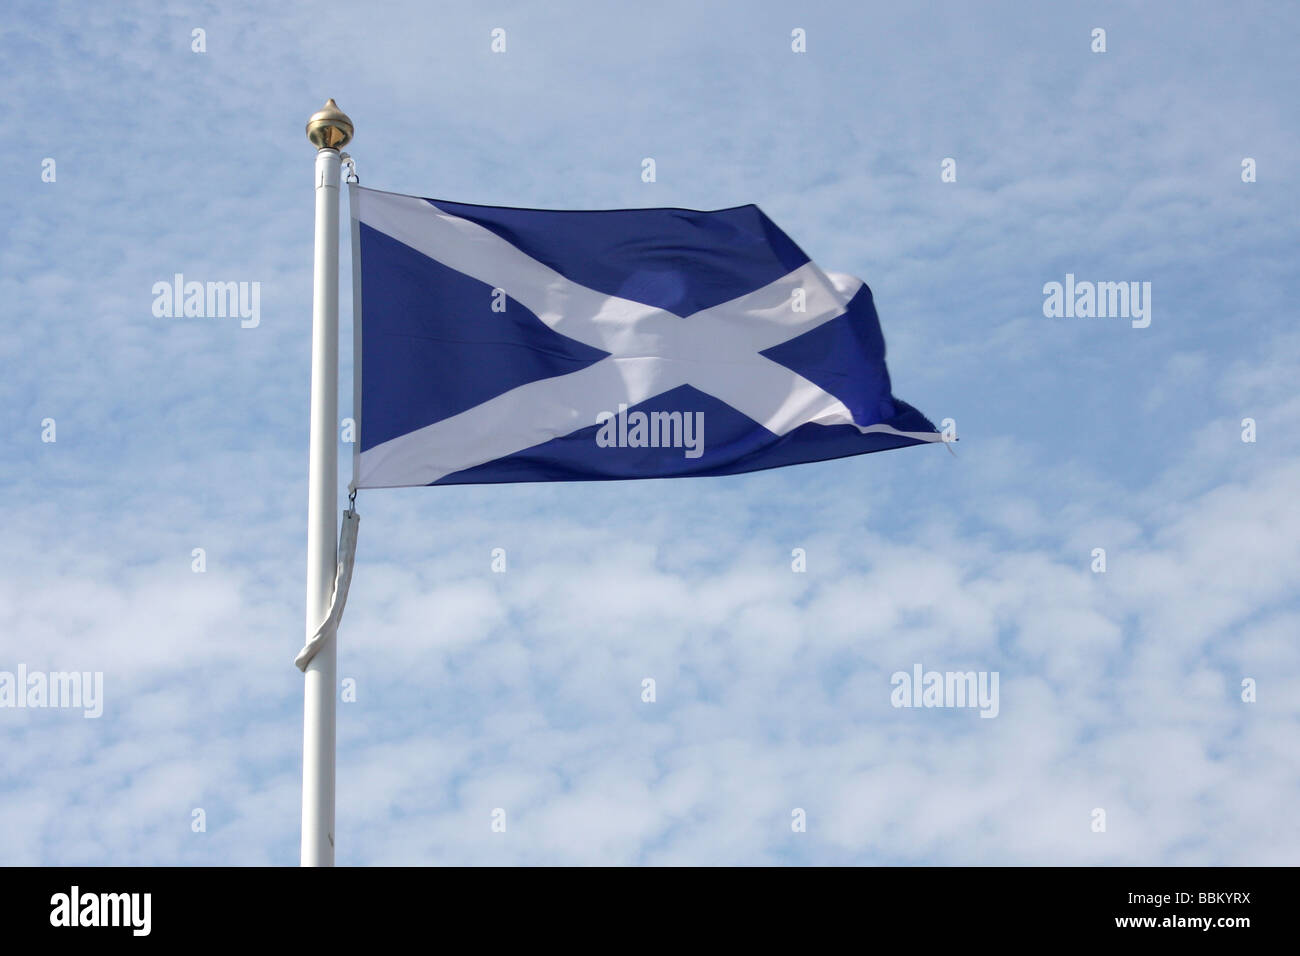 The Scottish national flag flying against a blue sky. - Stock Image